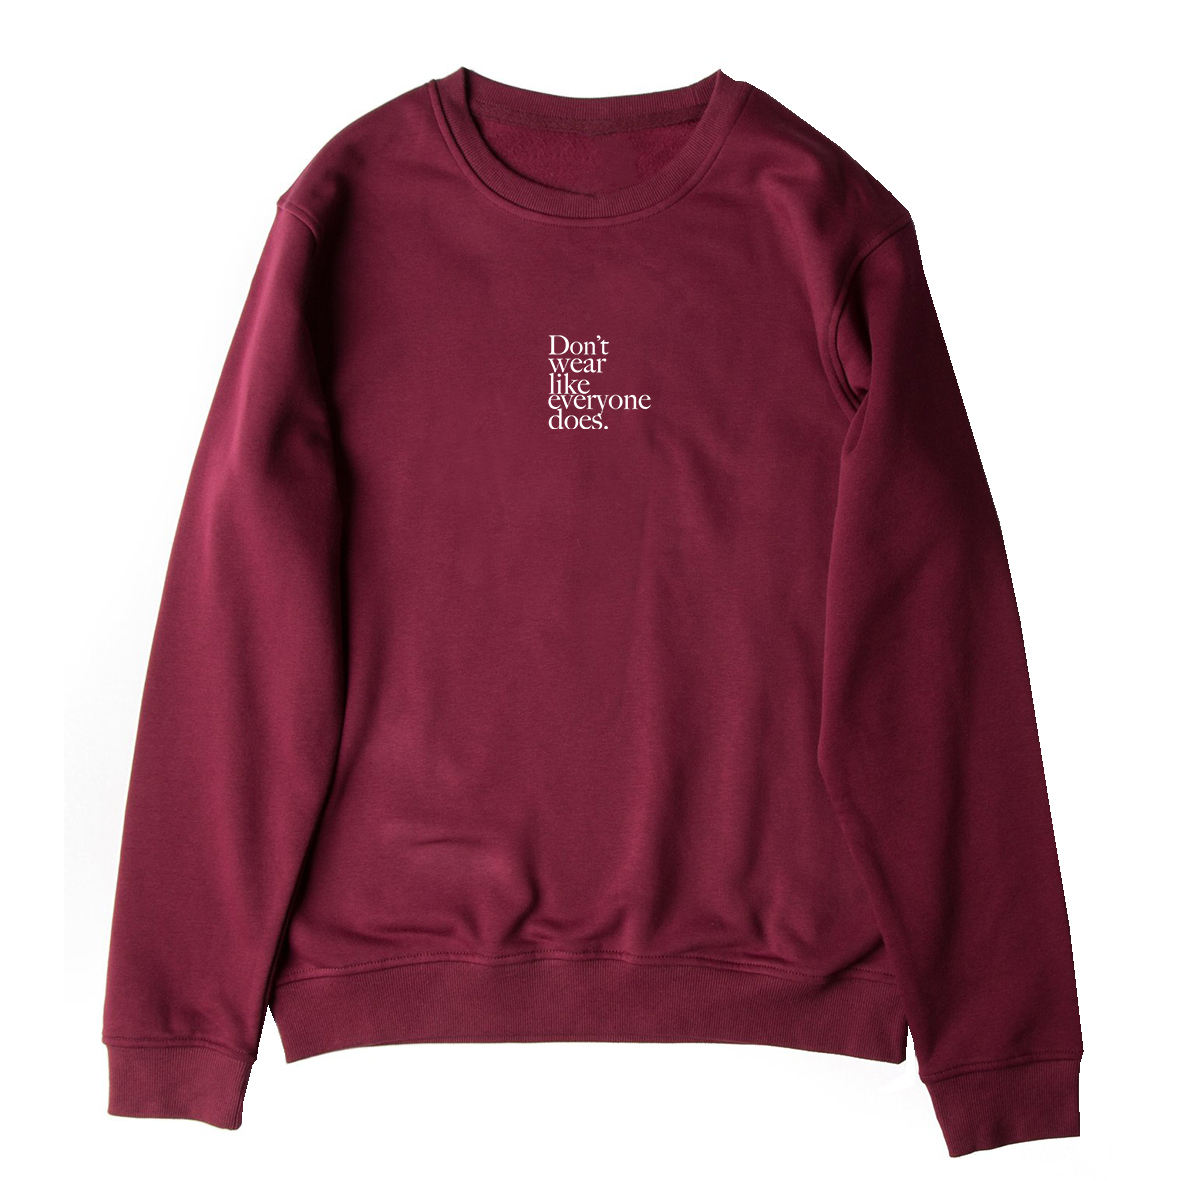 Don't wear like everyone does. Embroidery Sweat (Burgundy)